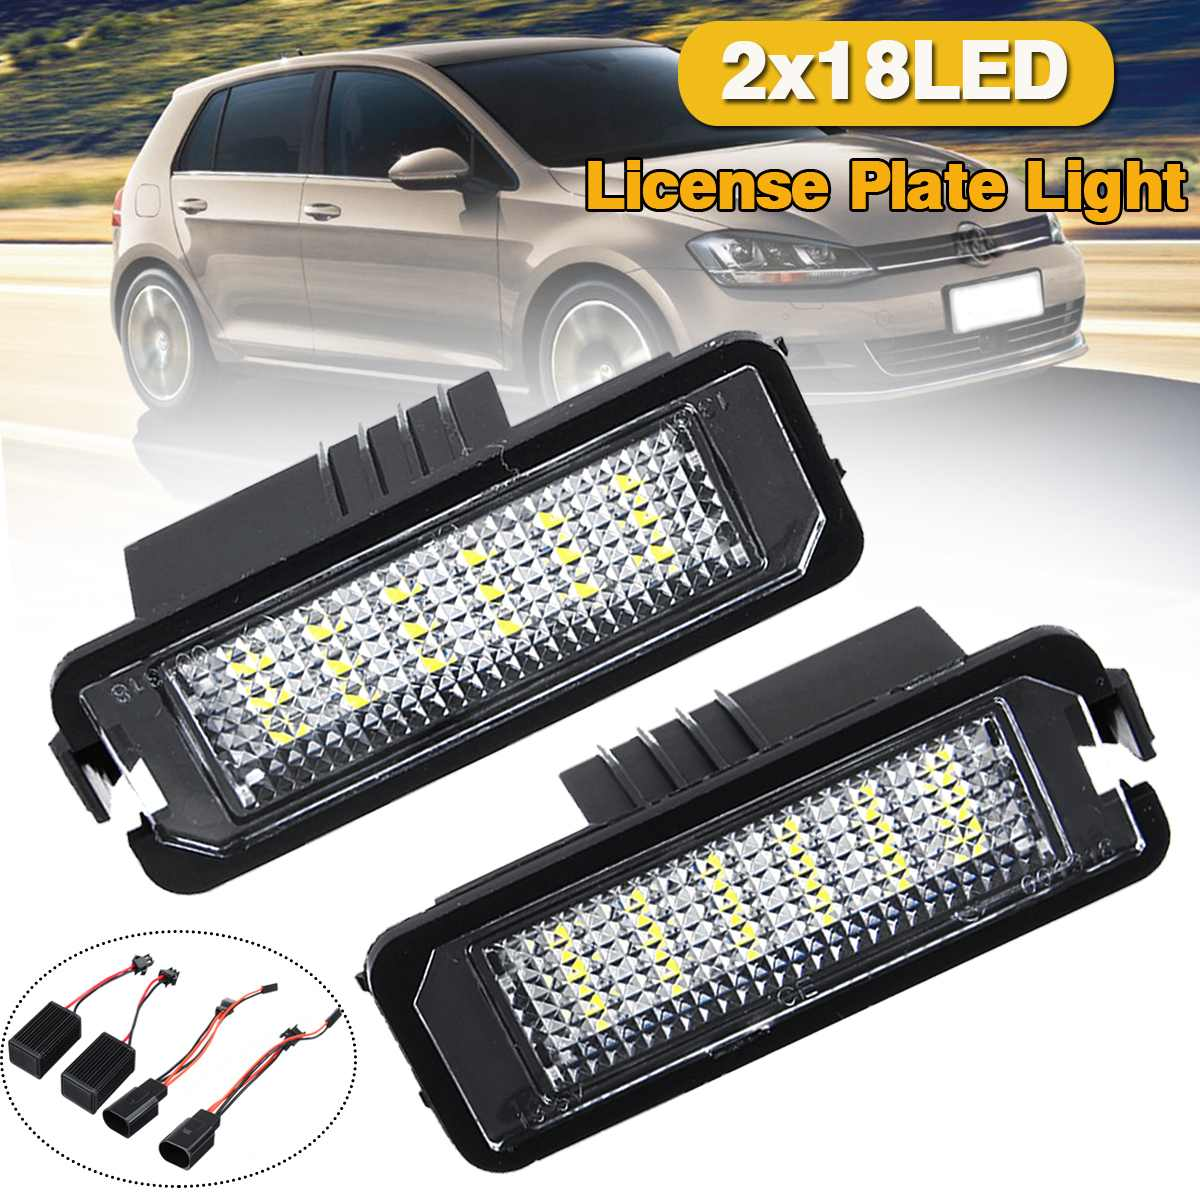 2x LED License Plate Lights Xenon White Lamps For VW Eos CC Scirocco 2009-2014